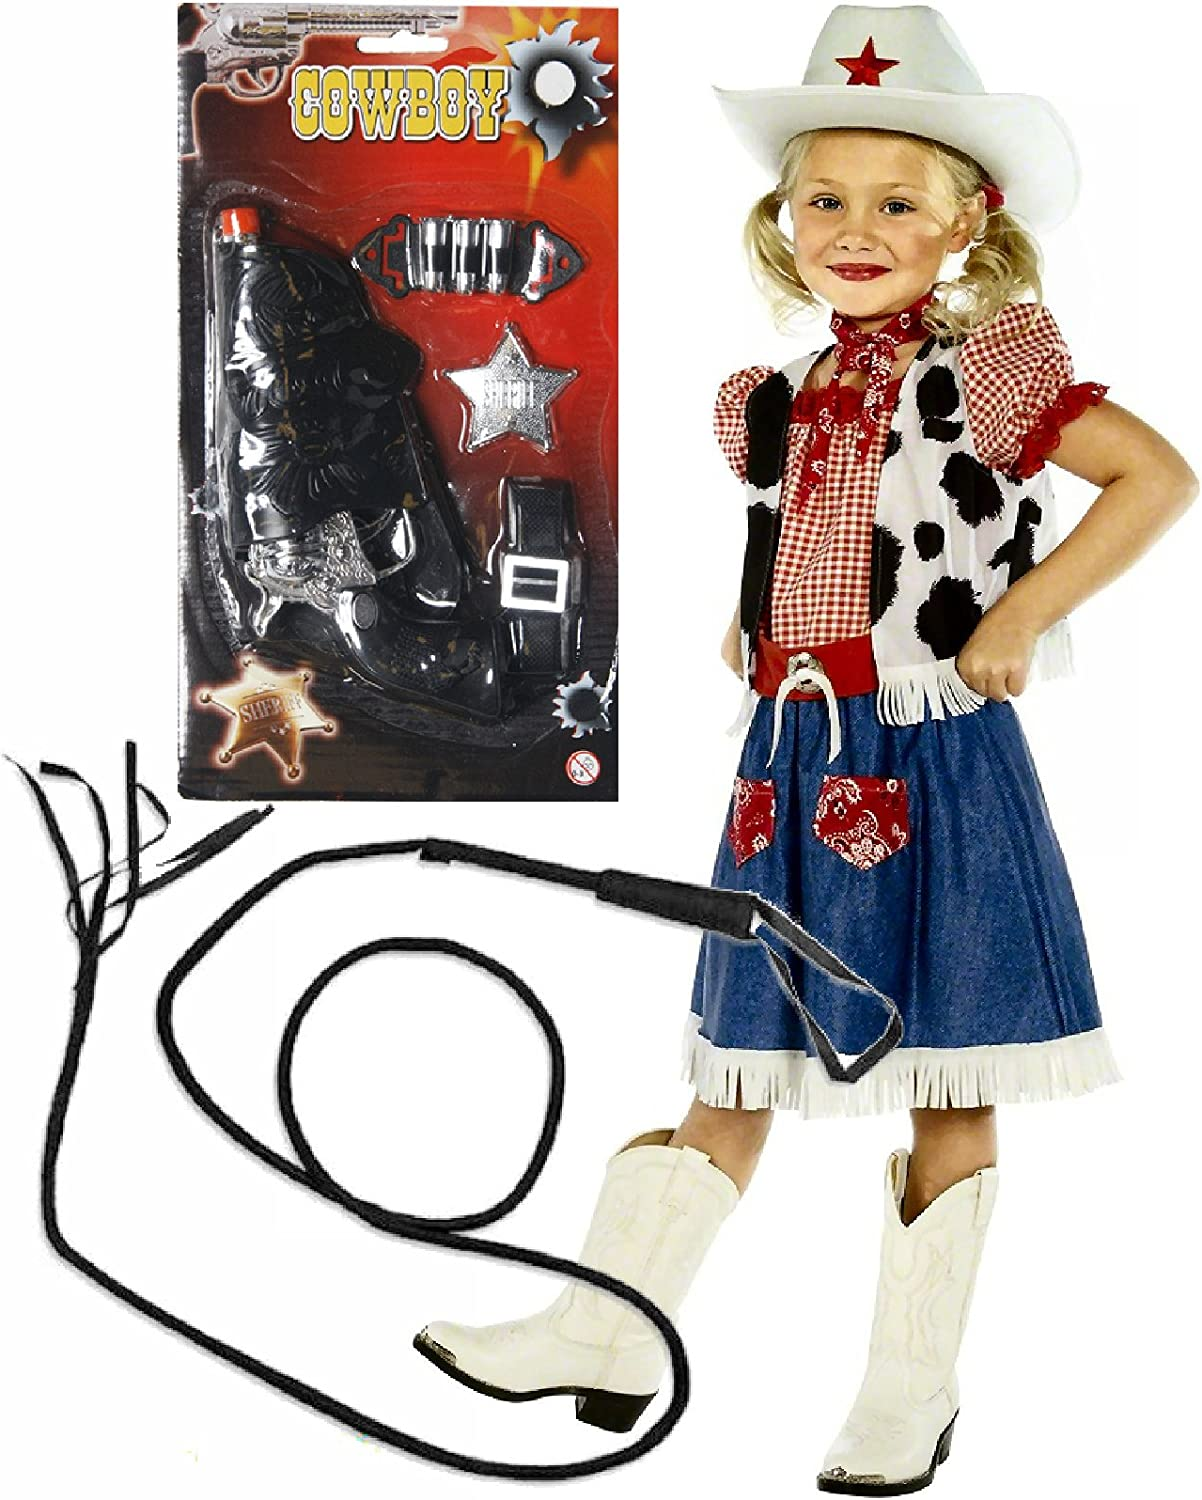 Cowboy Cowgirl Childrens Kids Boys /& Girls Fancy Dress Costume Party 2-12 Years